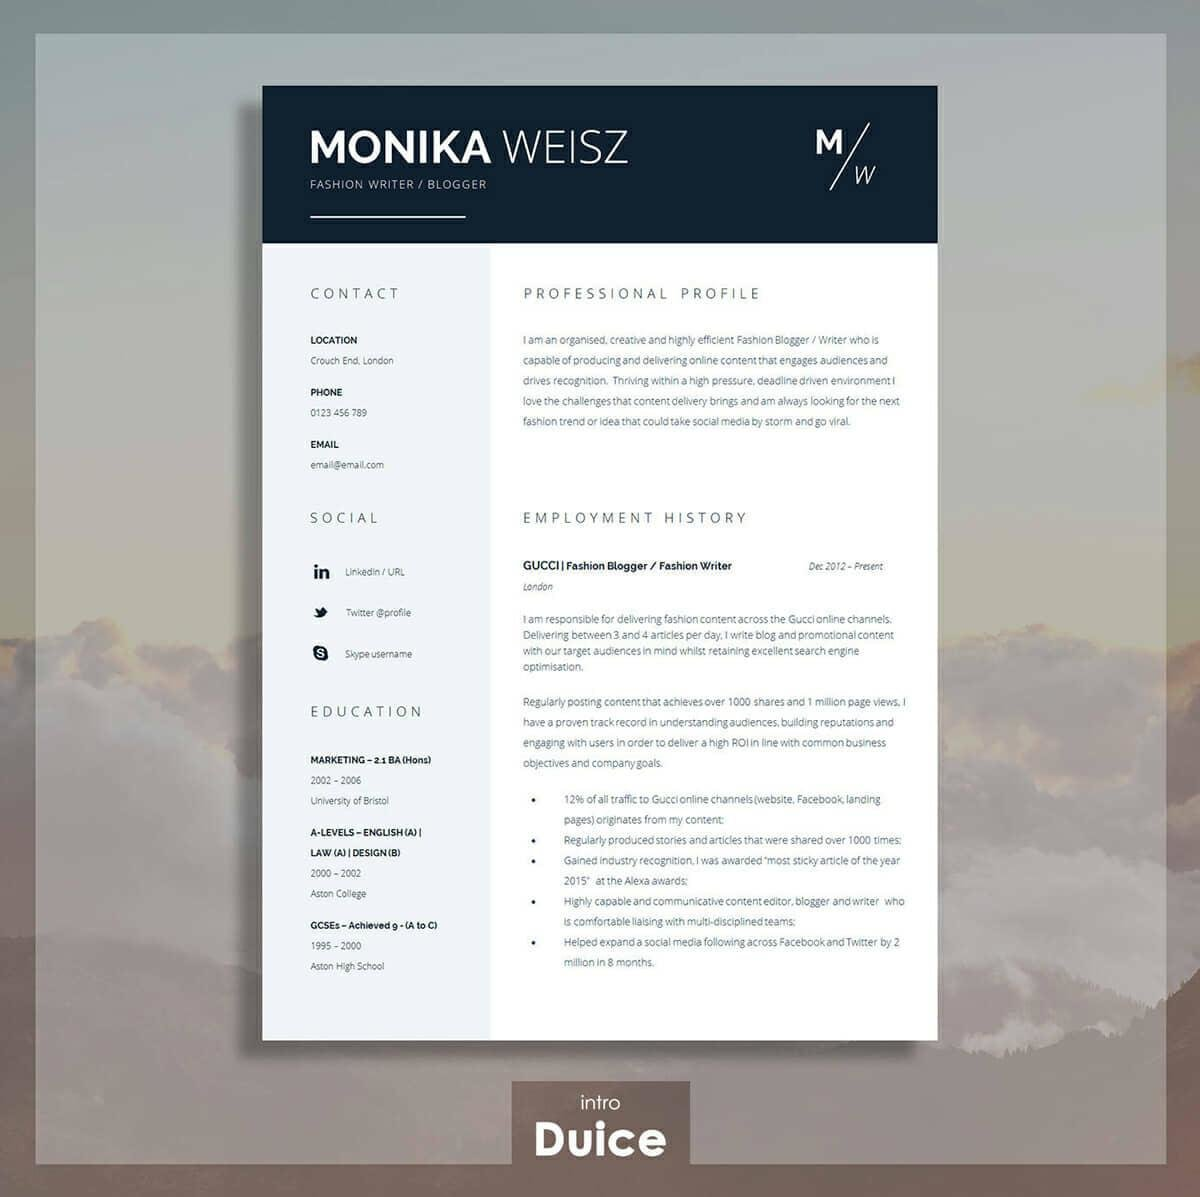 Microsoft Word Resume Template Best Resume Templates 15 Examples To Download Use Right Away